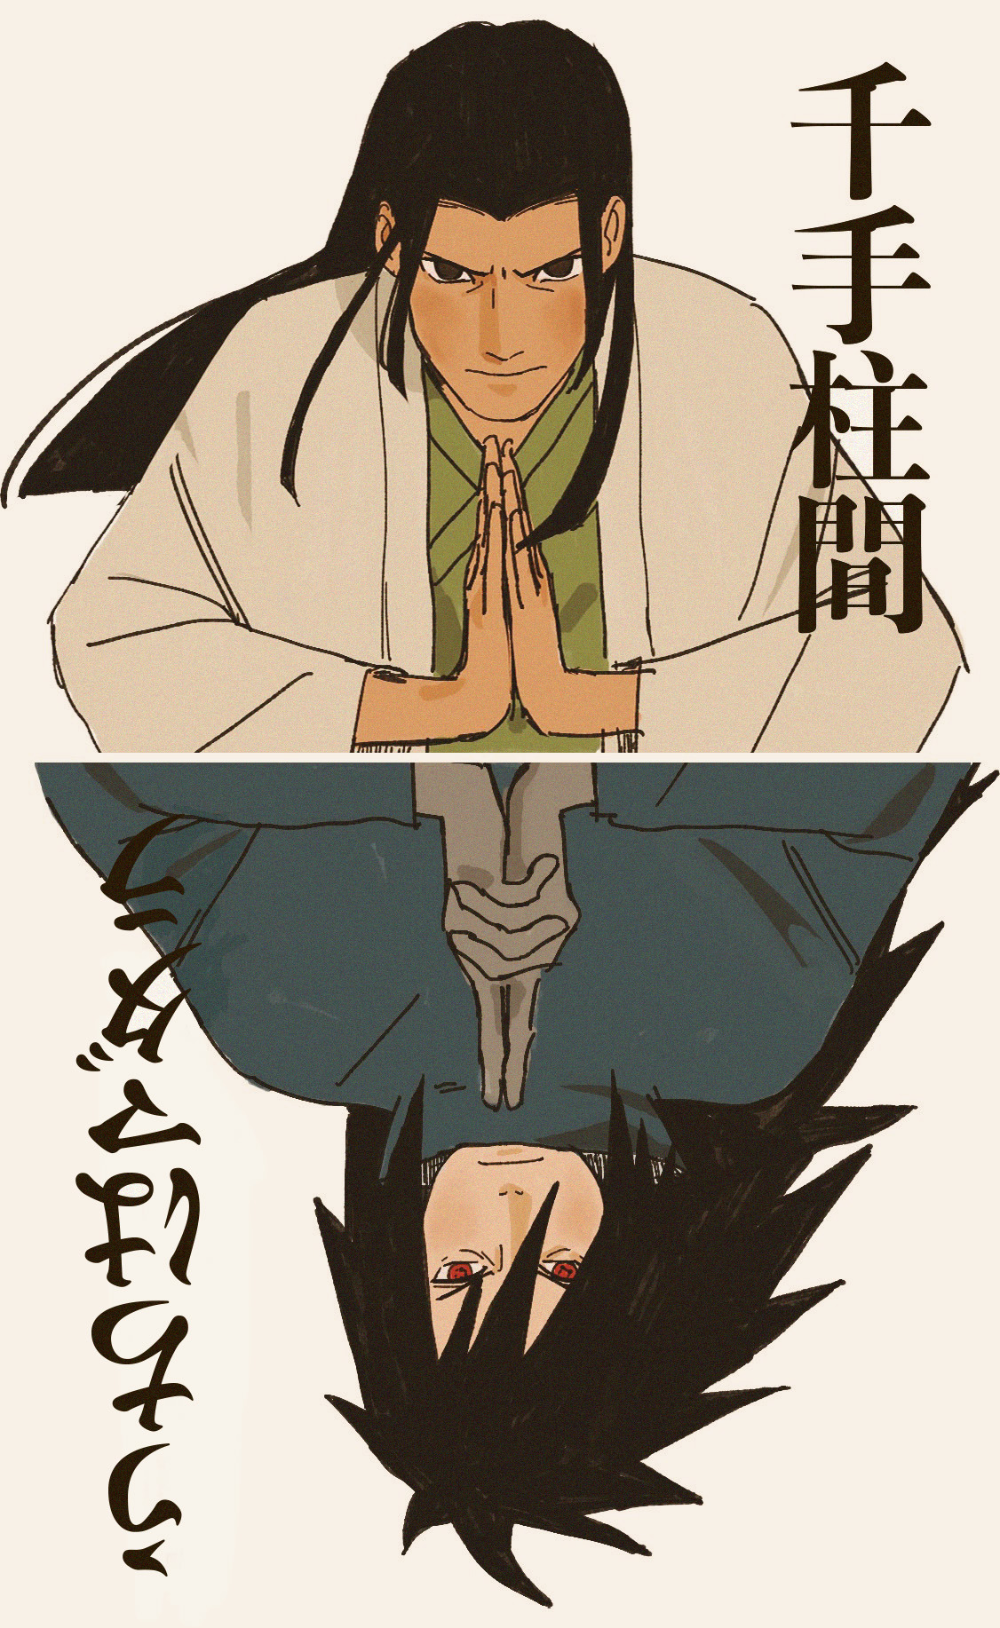 You can say oh but hashirama said he was madara's rival at the beginning! but it's pretty clear that friendship came first for the two of them. Pin on Naruto